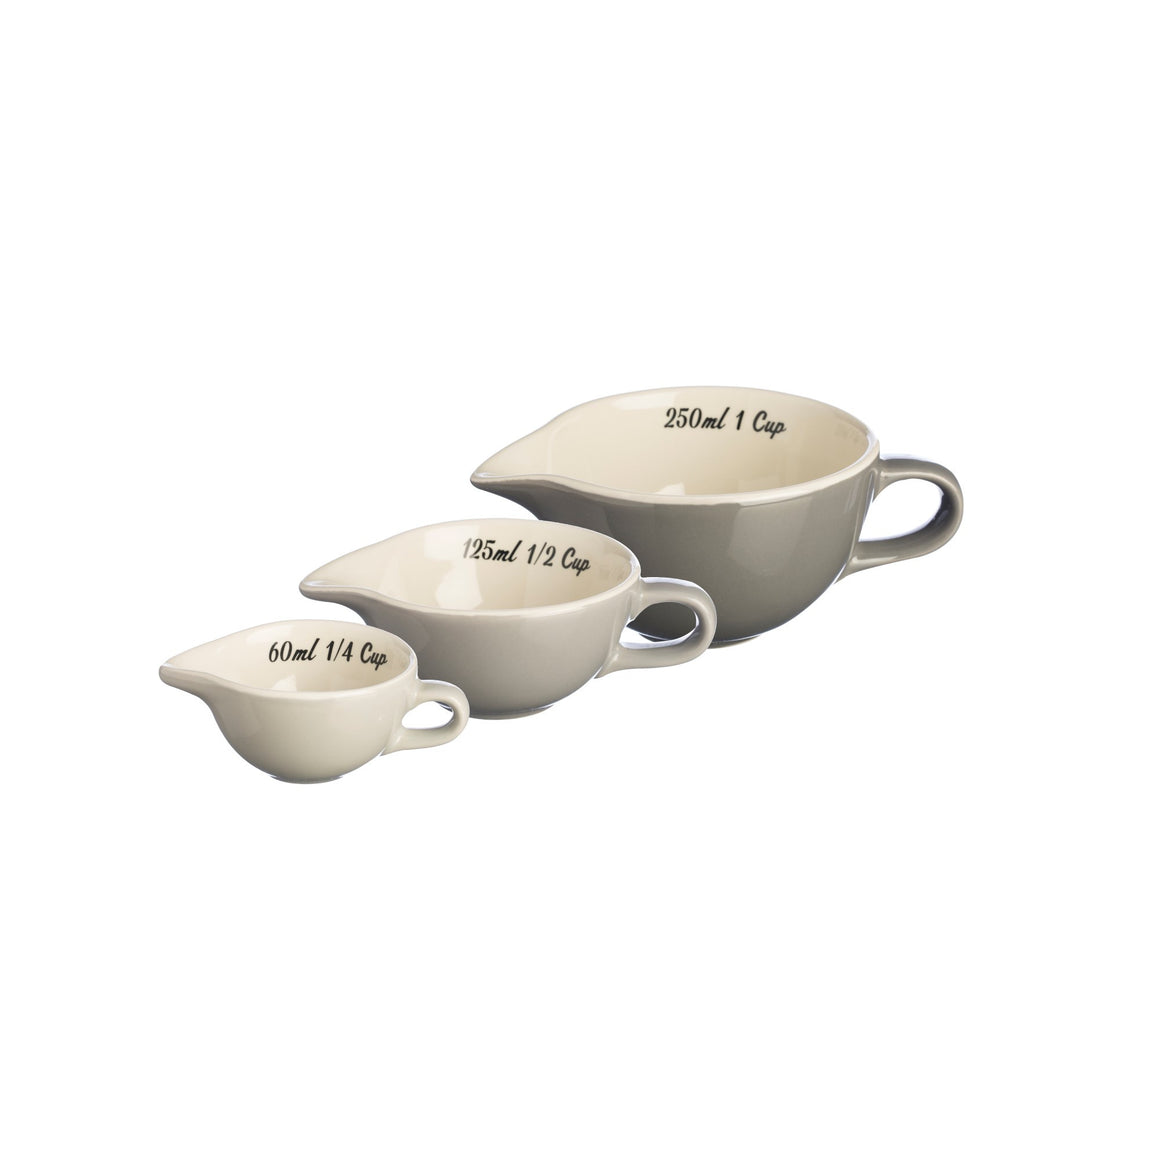 Mason Cash Bake My Day Set of 3 Measuring Cups (Grey) - 2001.604